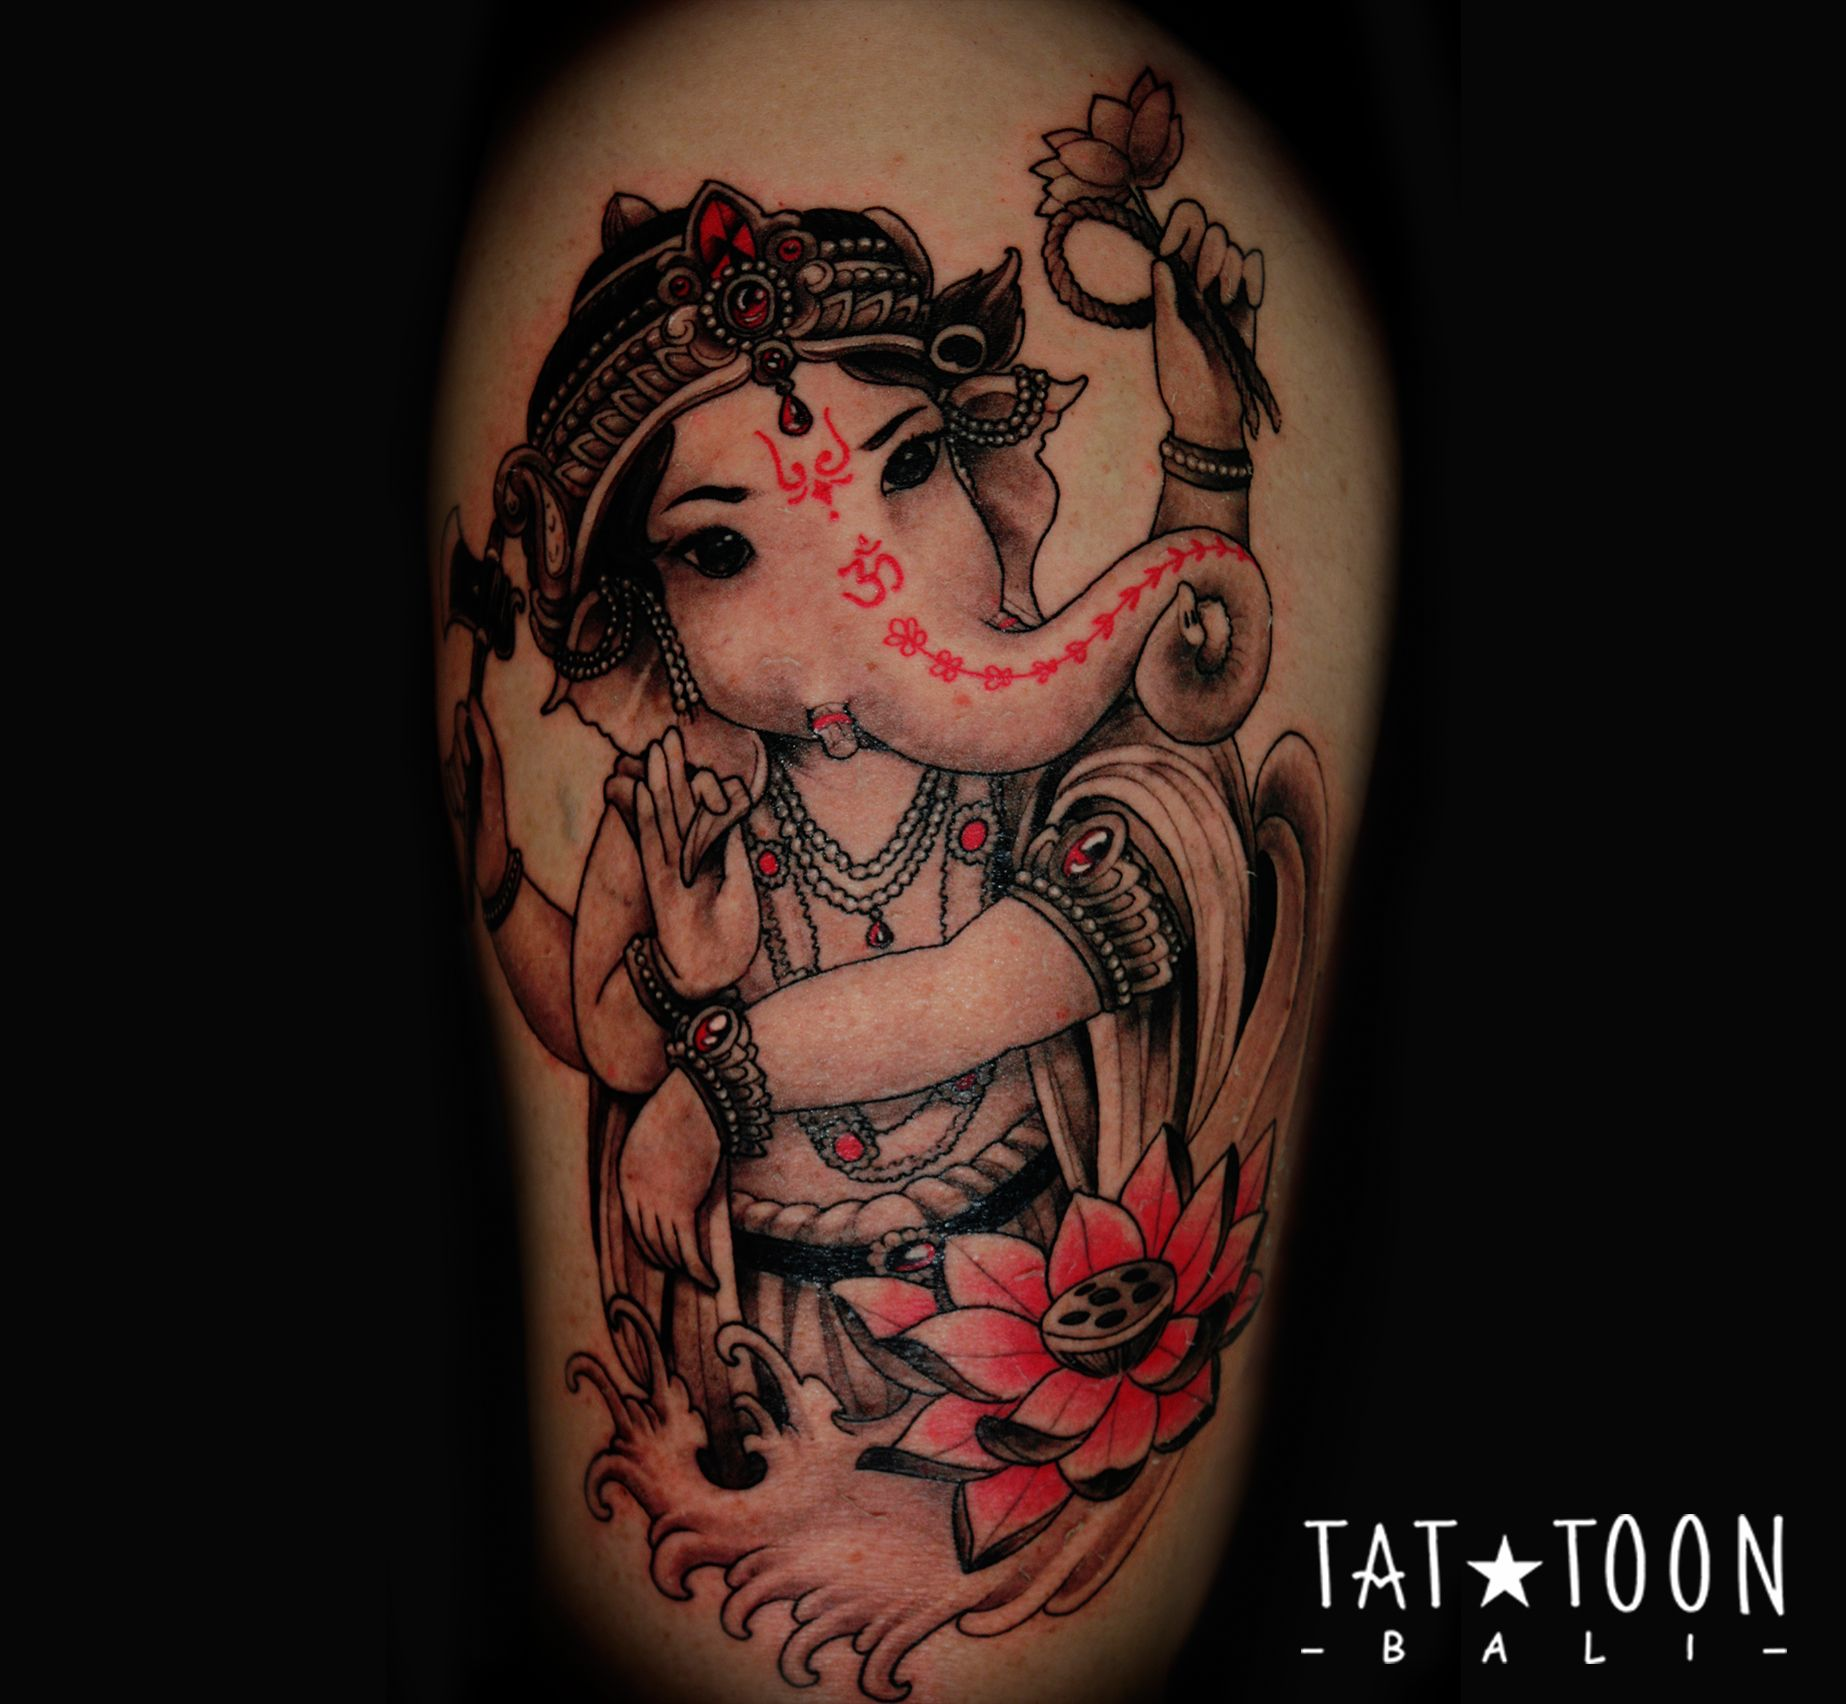 Tattoon Bali is the best tattoo shop and lounge in Bali